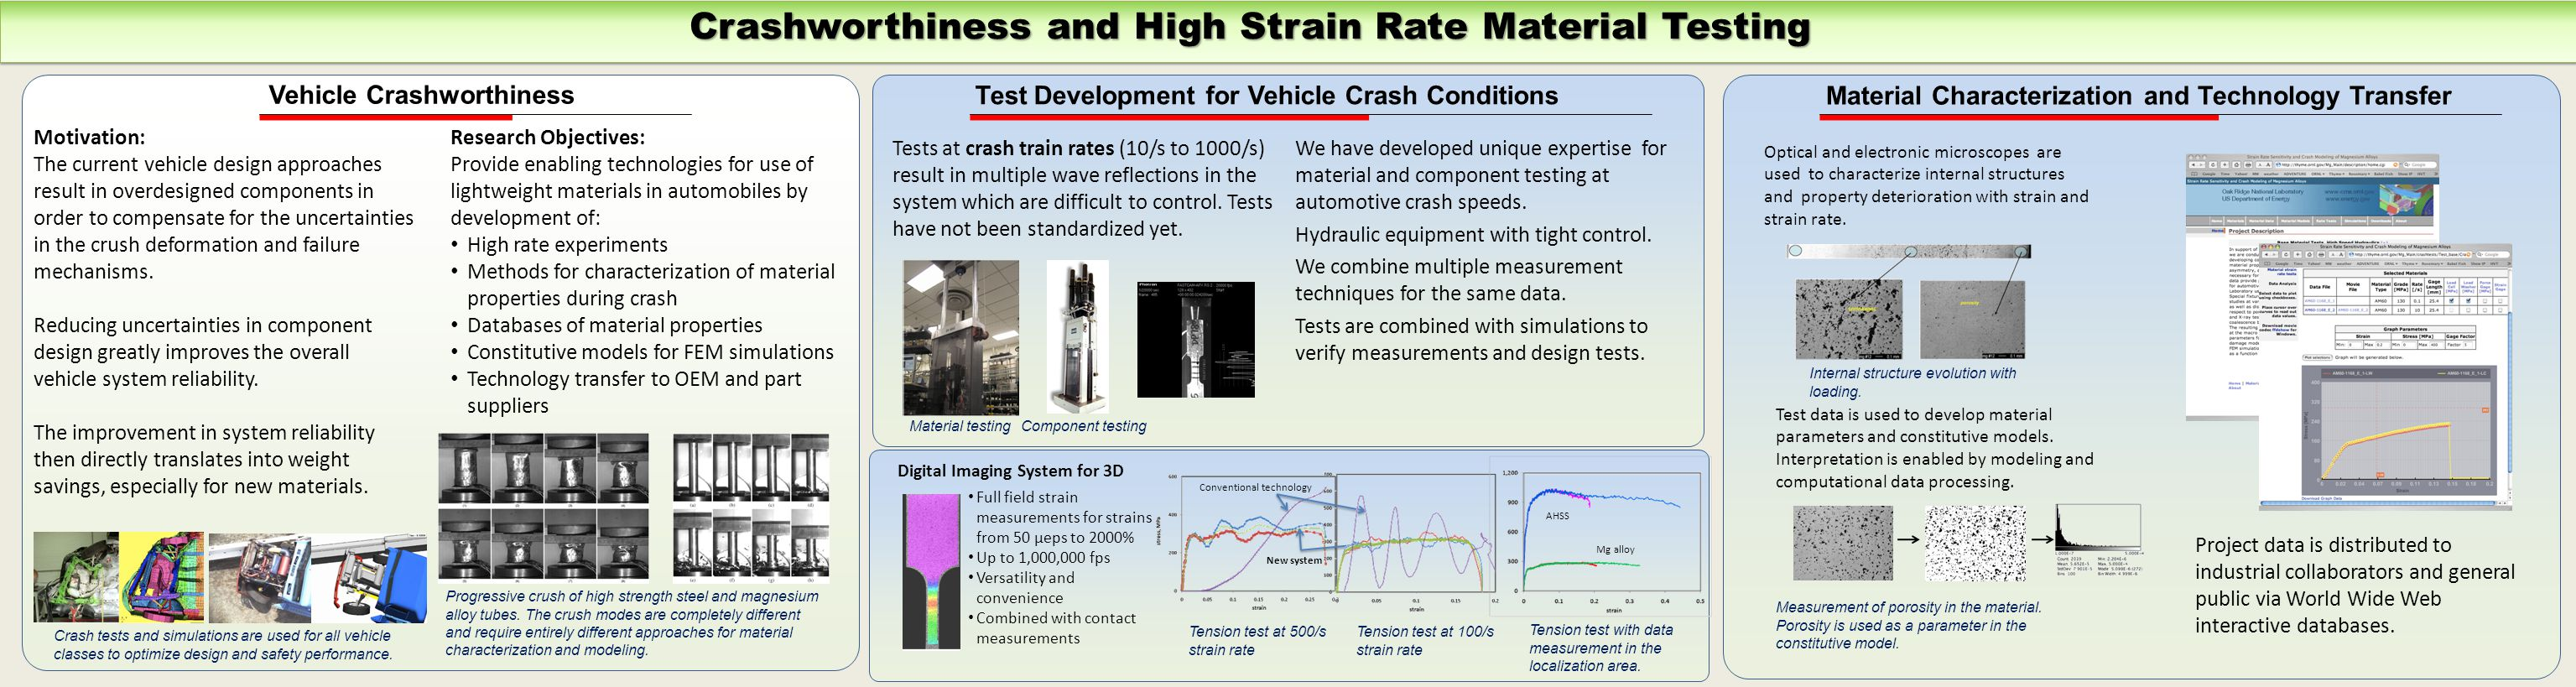 Computational Modeling of Materials and Structures Structural Modeling and Optimization Development of Parallel Computer Codes for Simulation of Coupled Physics Phenomena Composite Materials Modeling Large scale crash simulations were used to optimize design of new stainless steel bus design that is 50% lighter than the conventional designs.